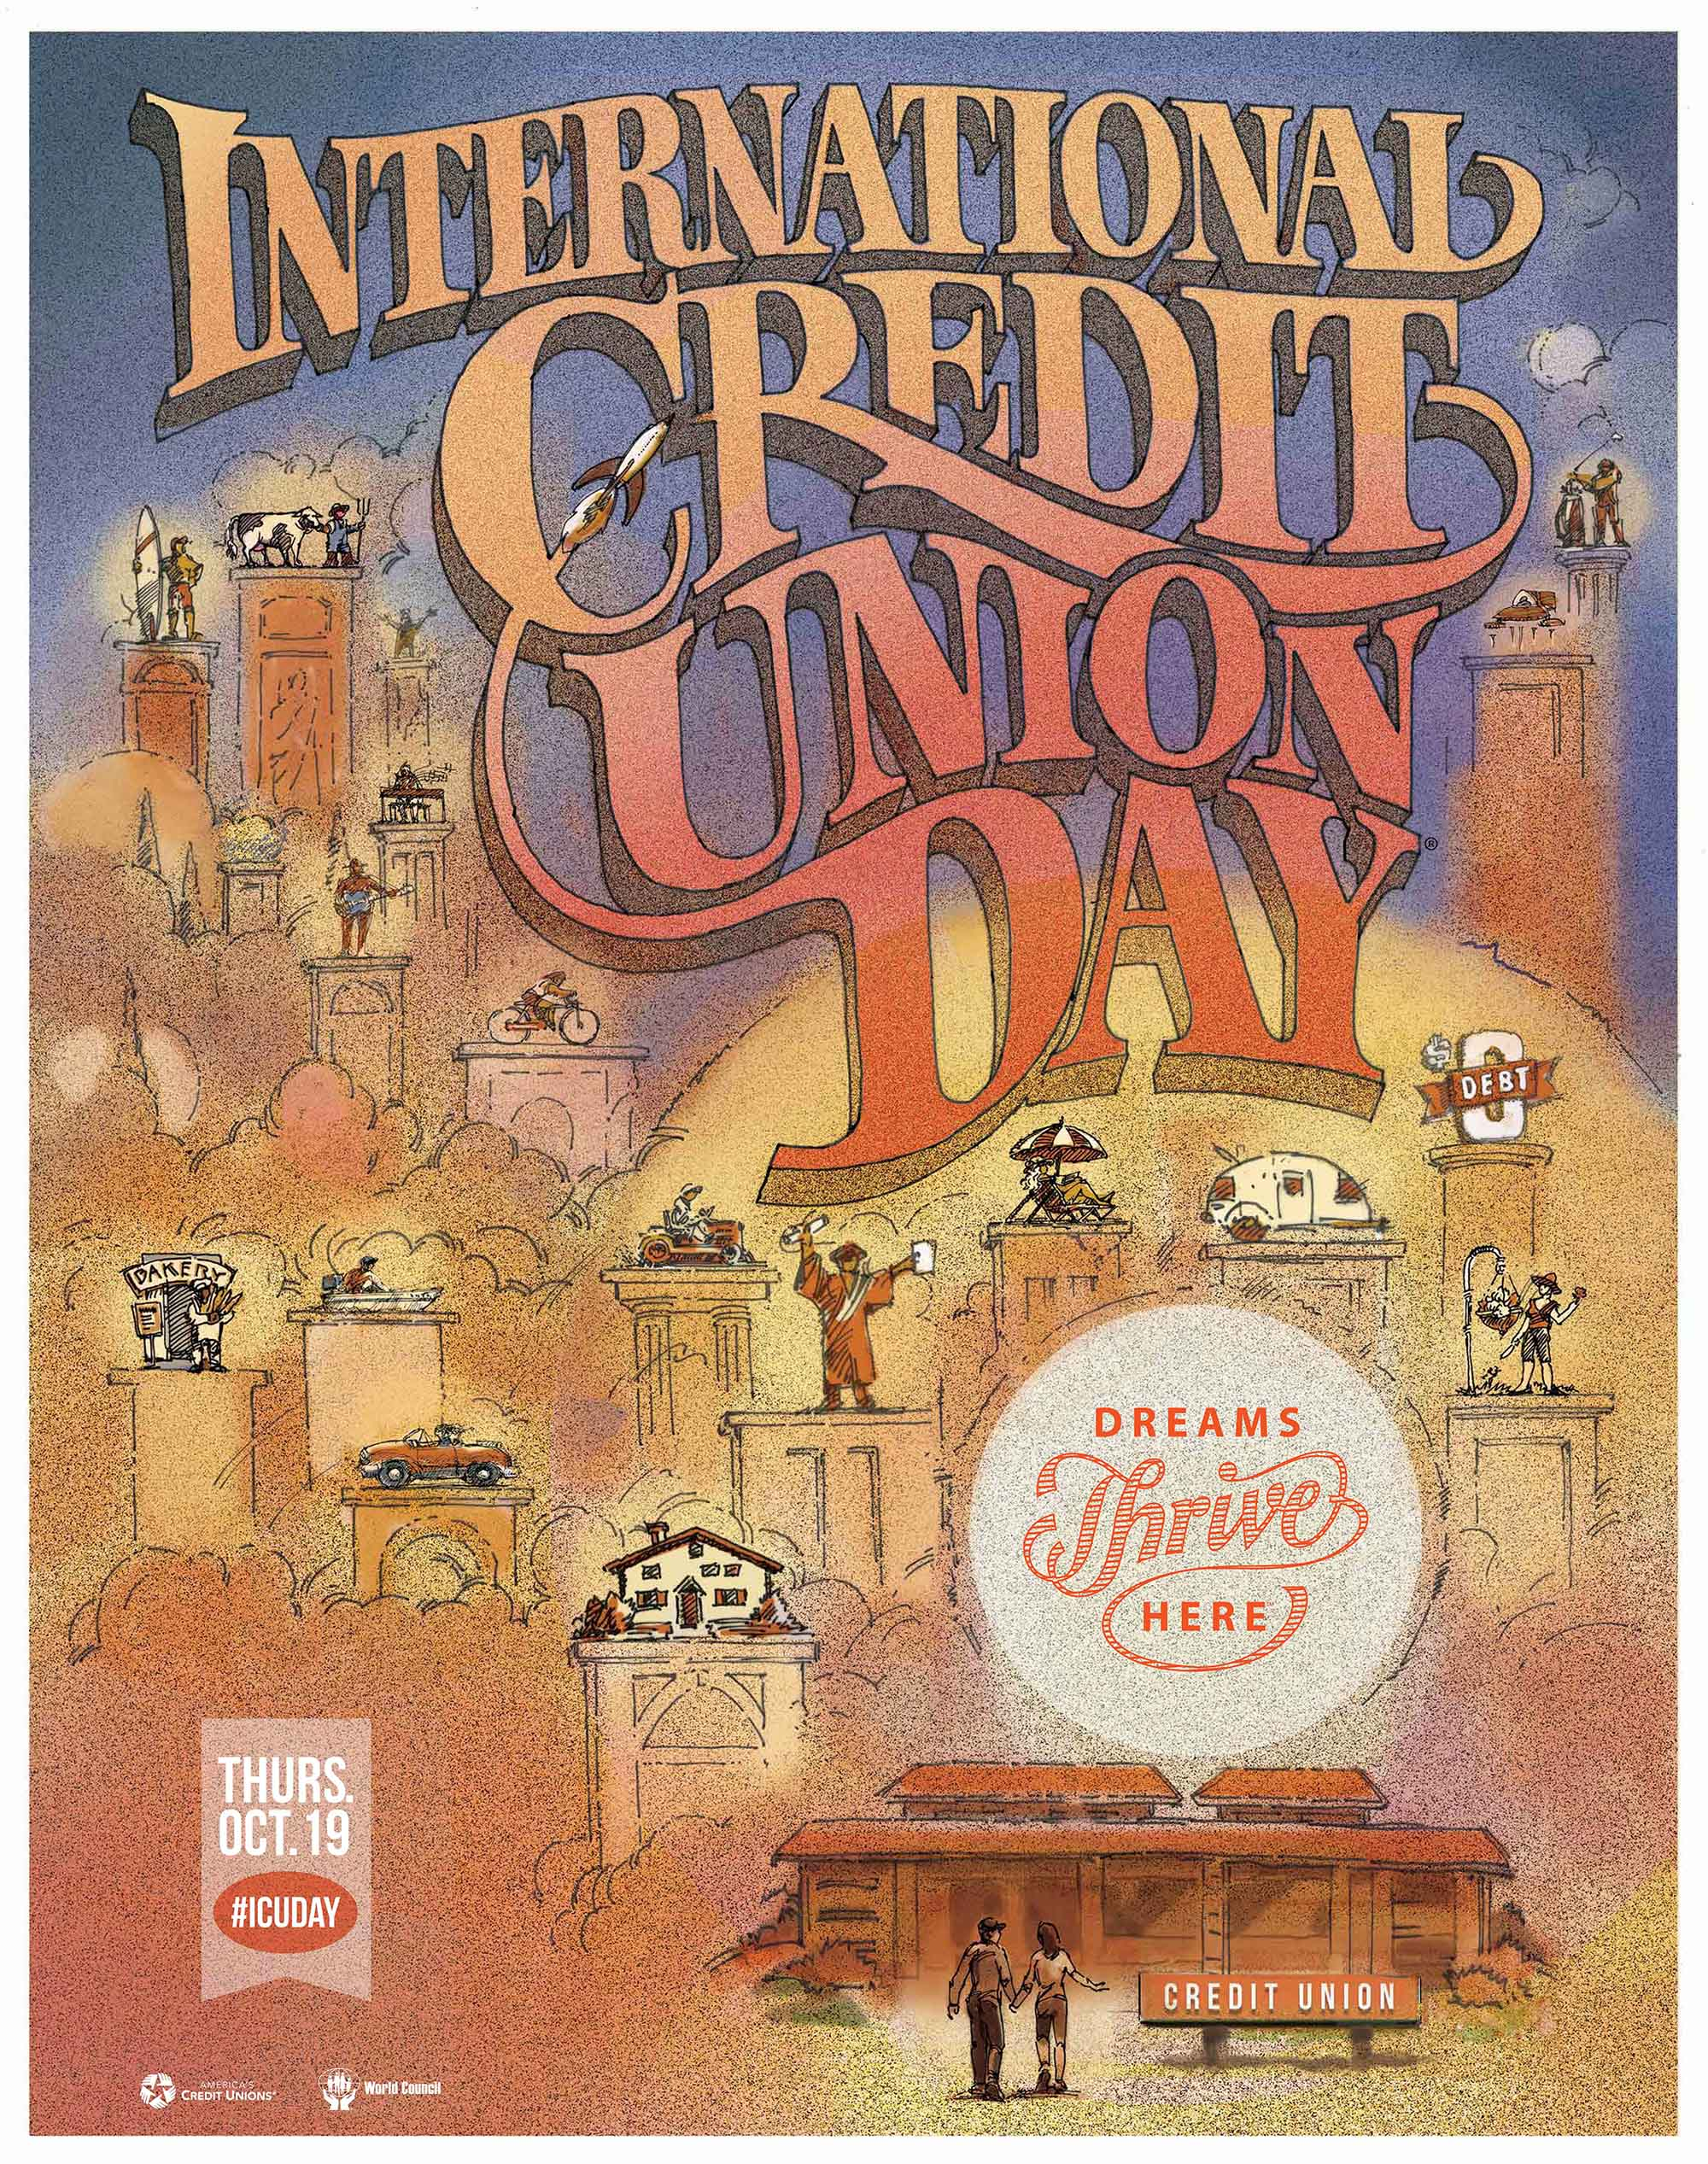 New Dimensions Celebrates International Credit Union Day